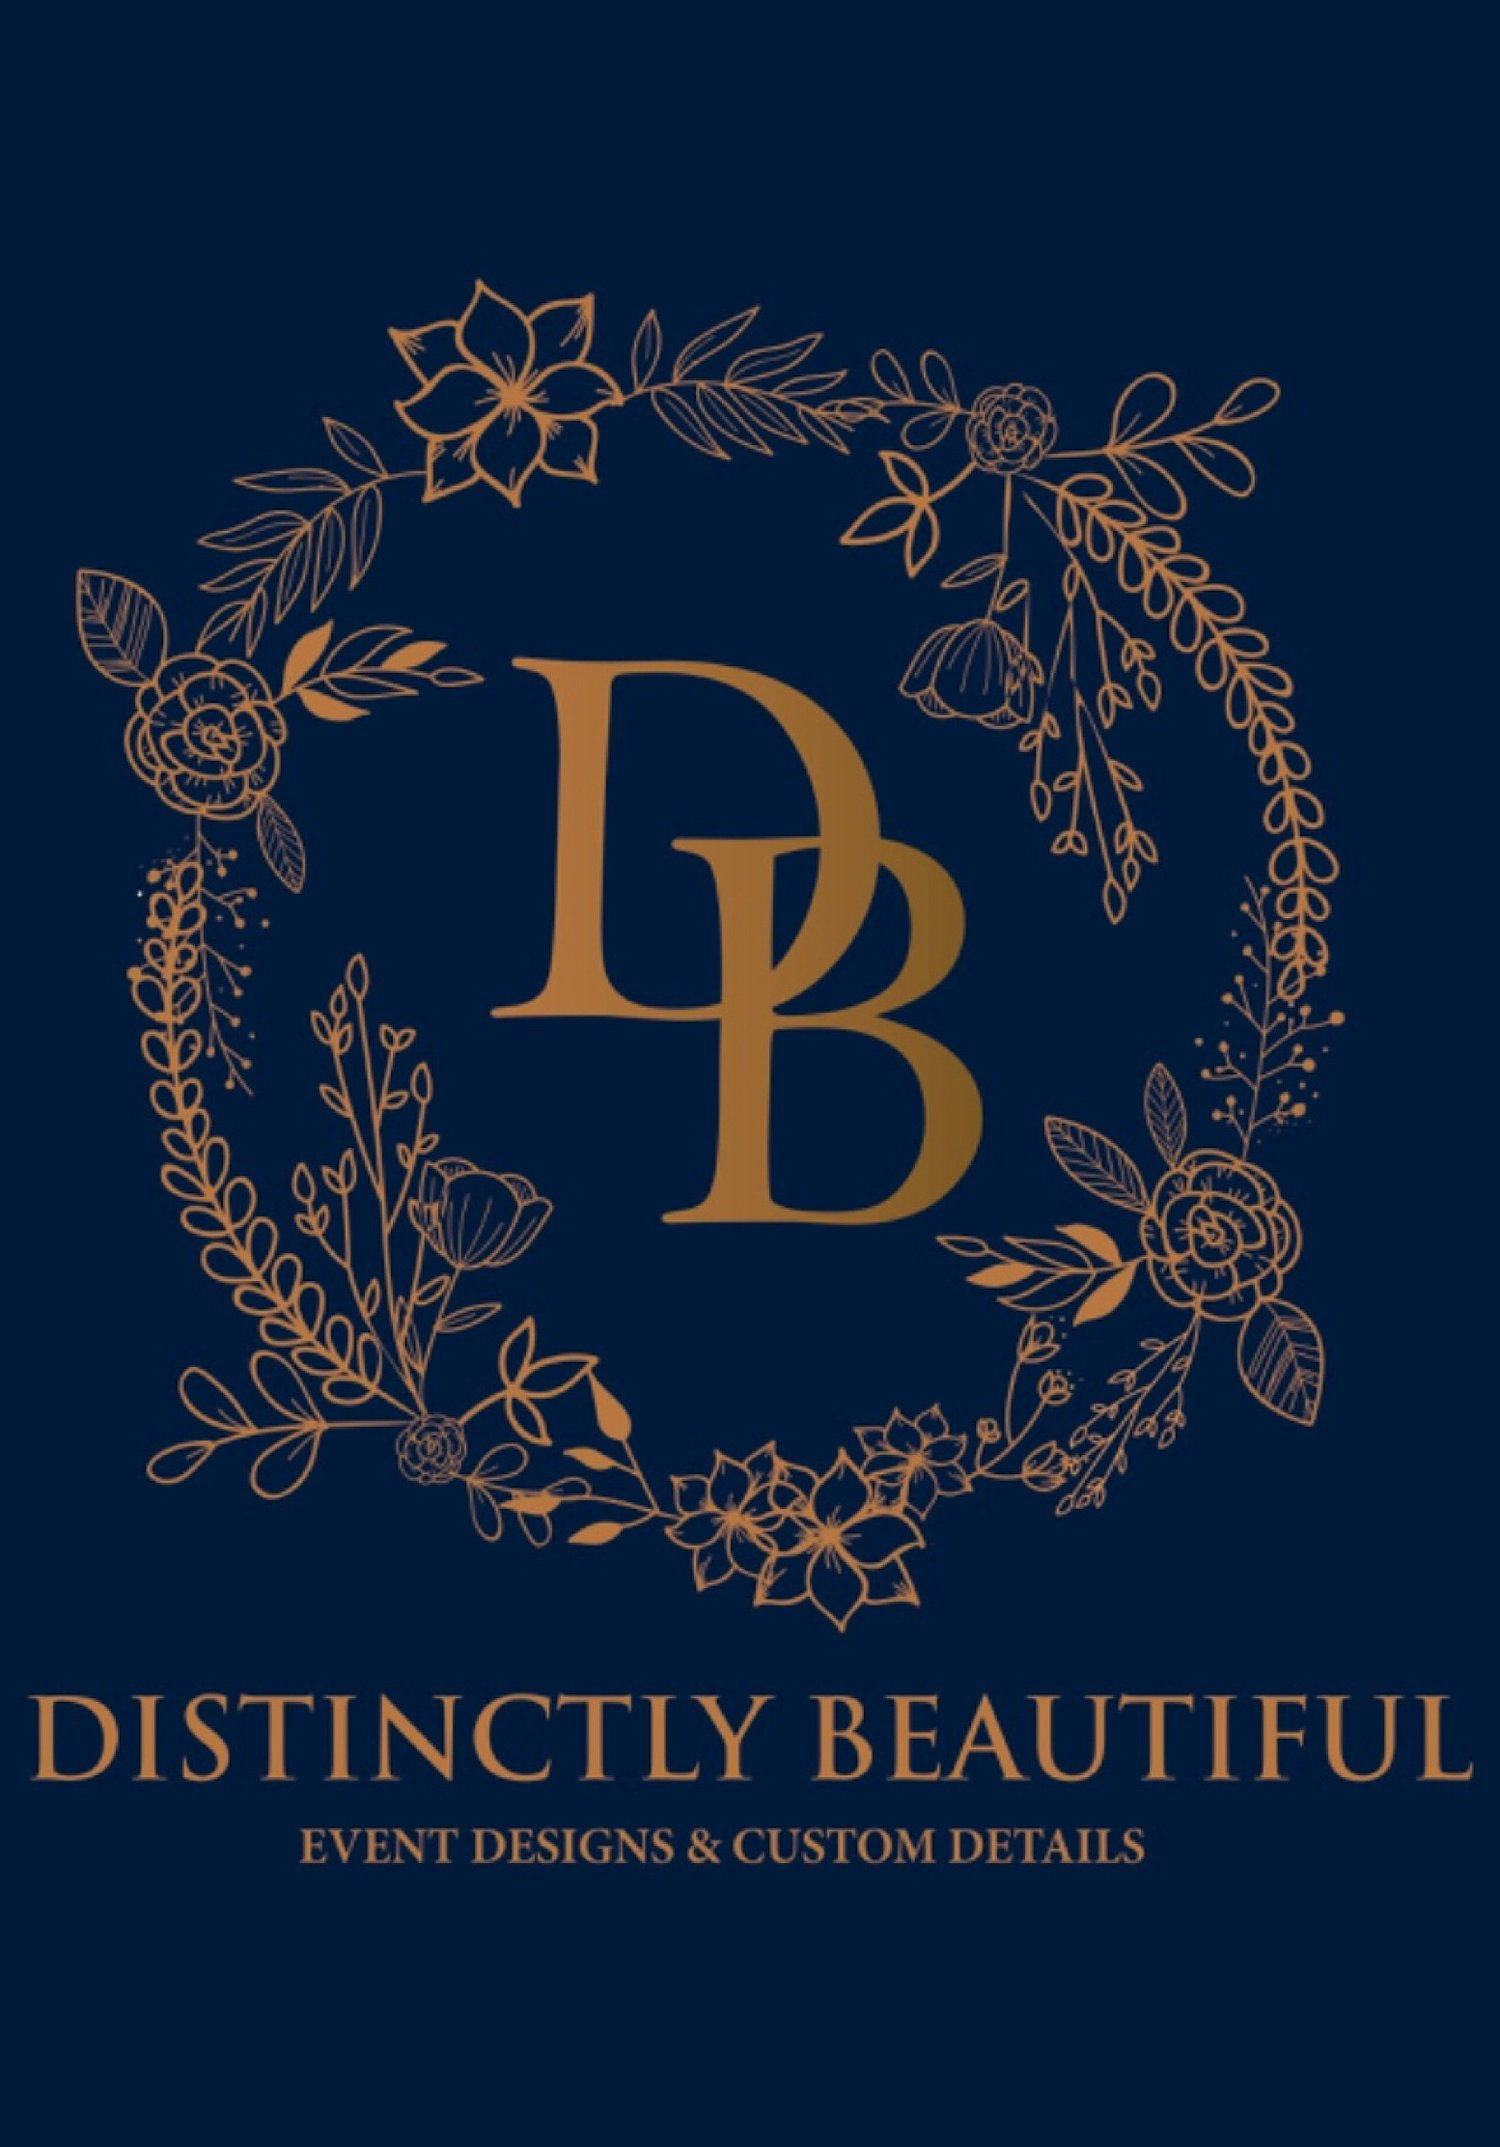 Distinctly Beautiful